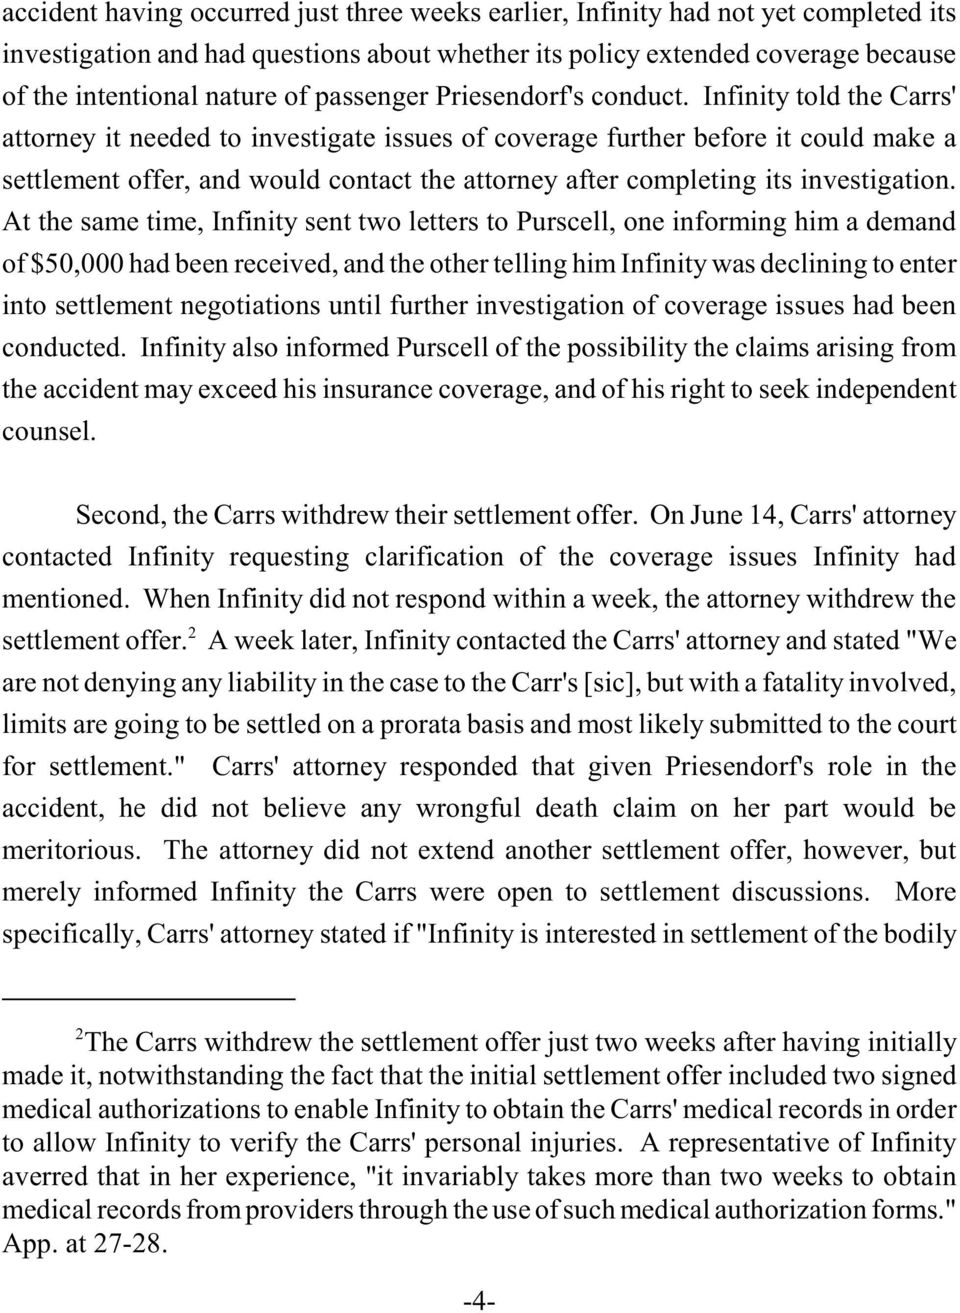 Infinity told the Carrs' attorney it needed to investigate issues of coverage further before it could make a settlement offer, and would contact the attorney after completing its investigation.